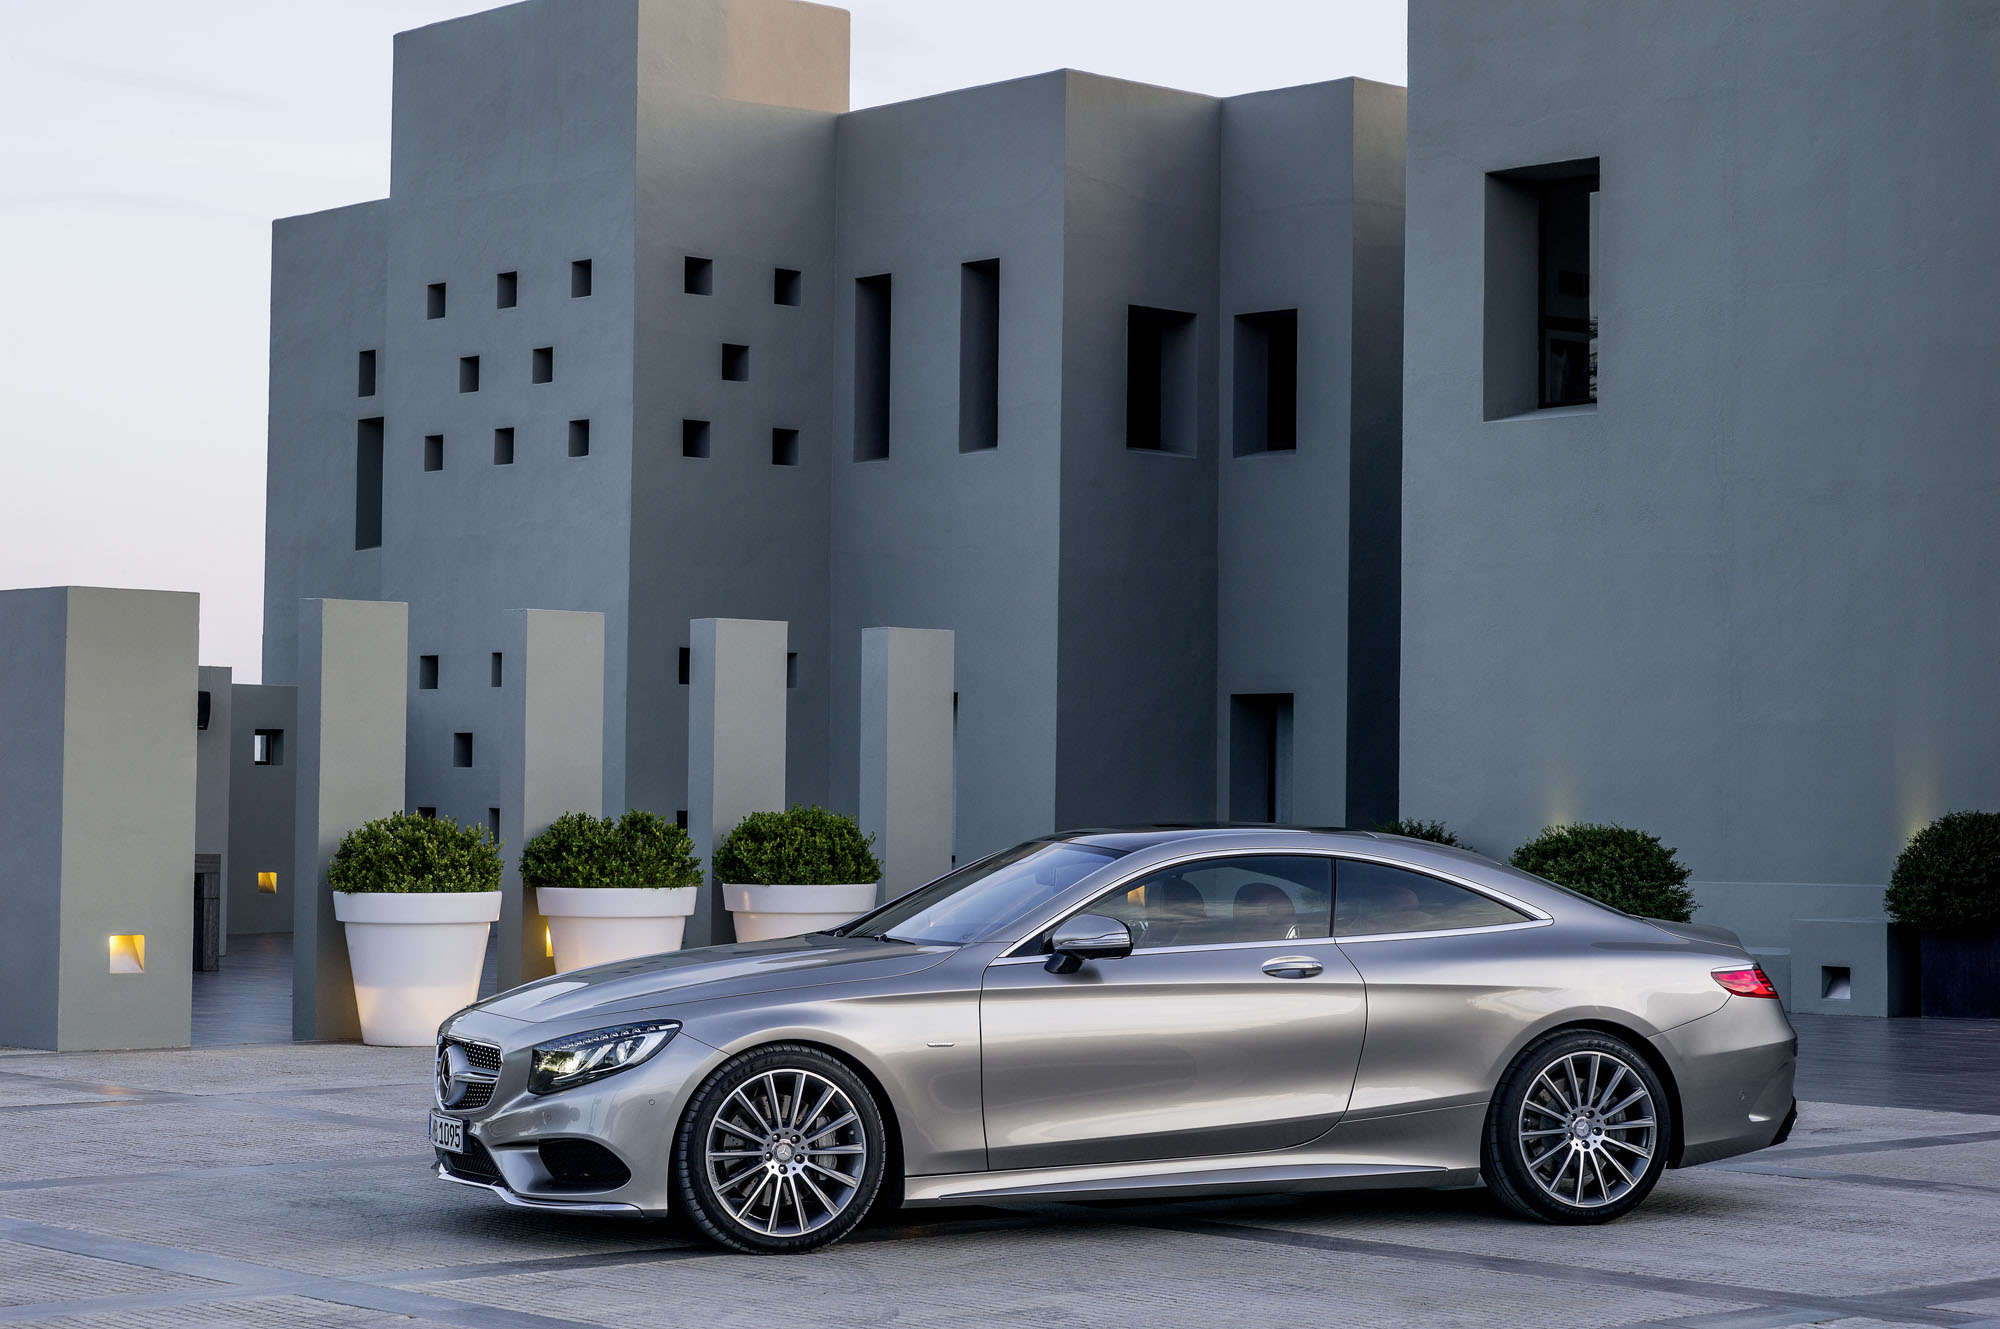 If you really want to hear all that power, put the coupe in sport